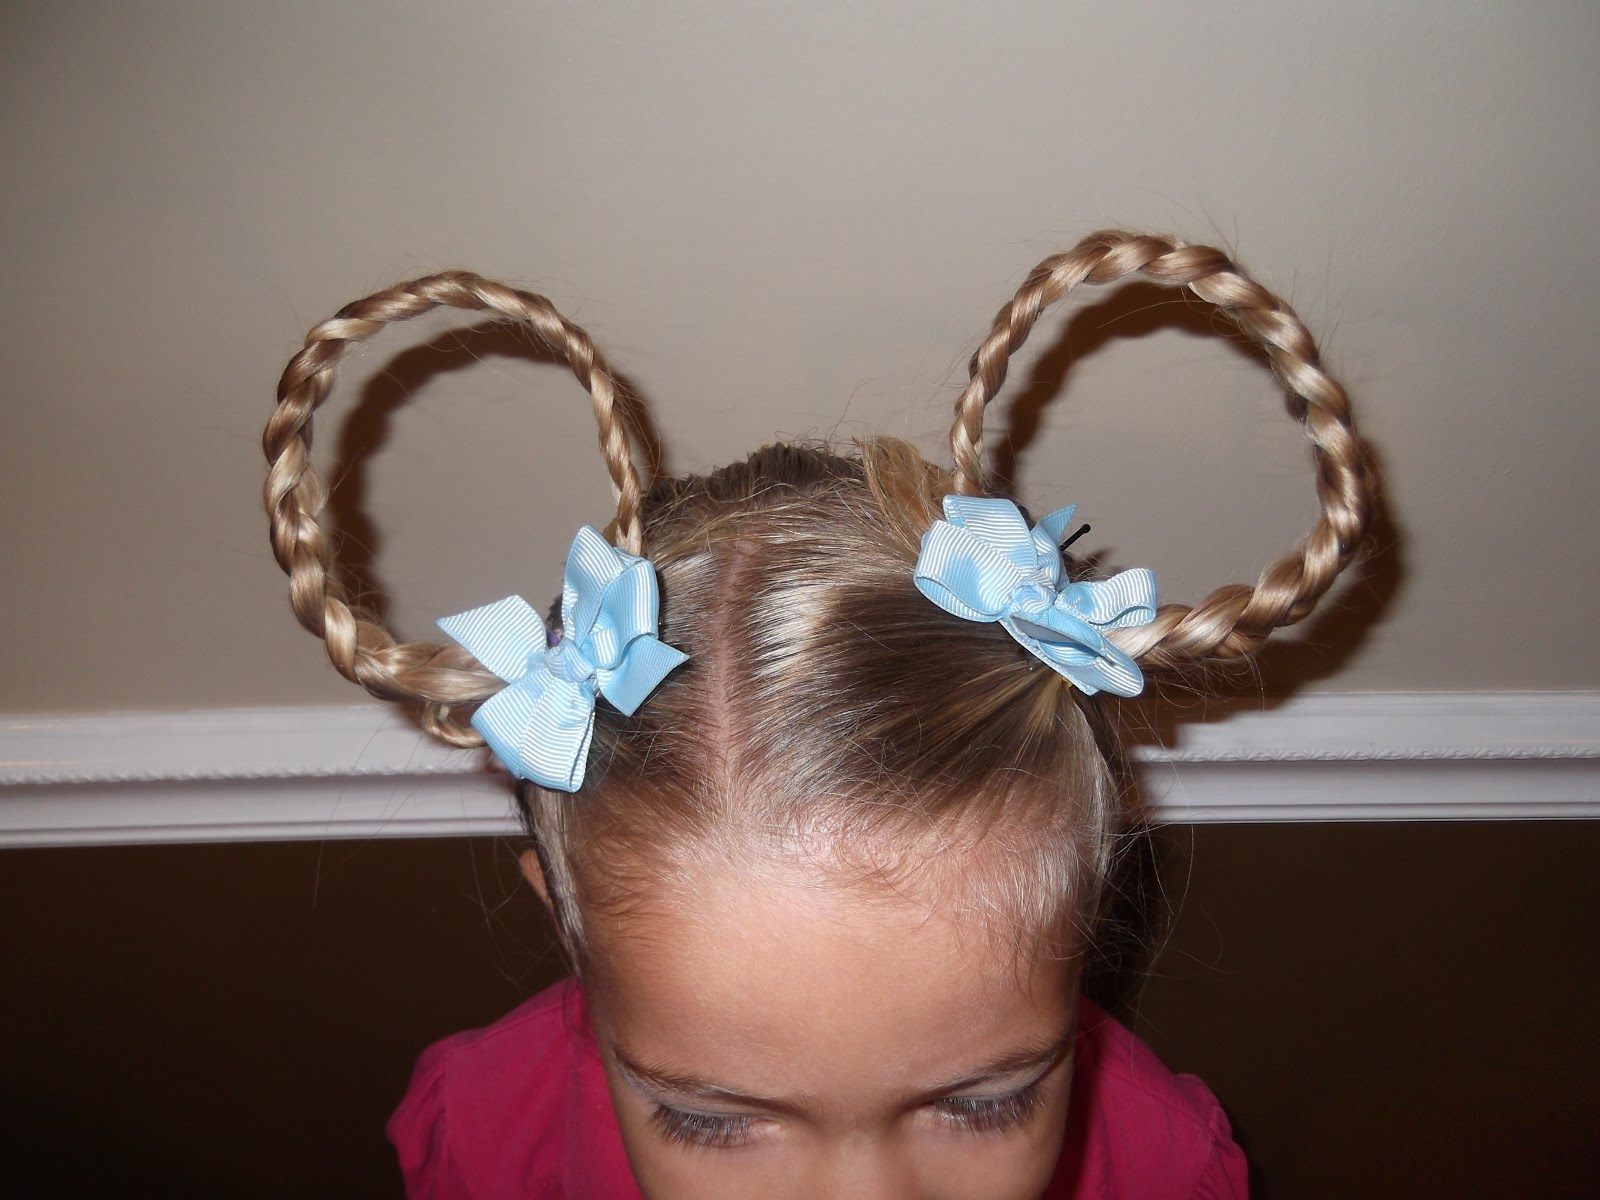 Shaunell's Hair: Little Girl's Hairstyles: Crazy Hair Day